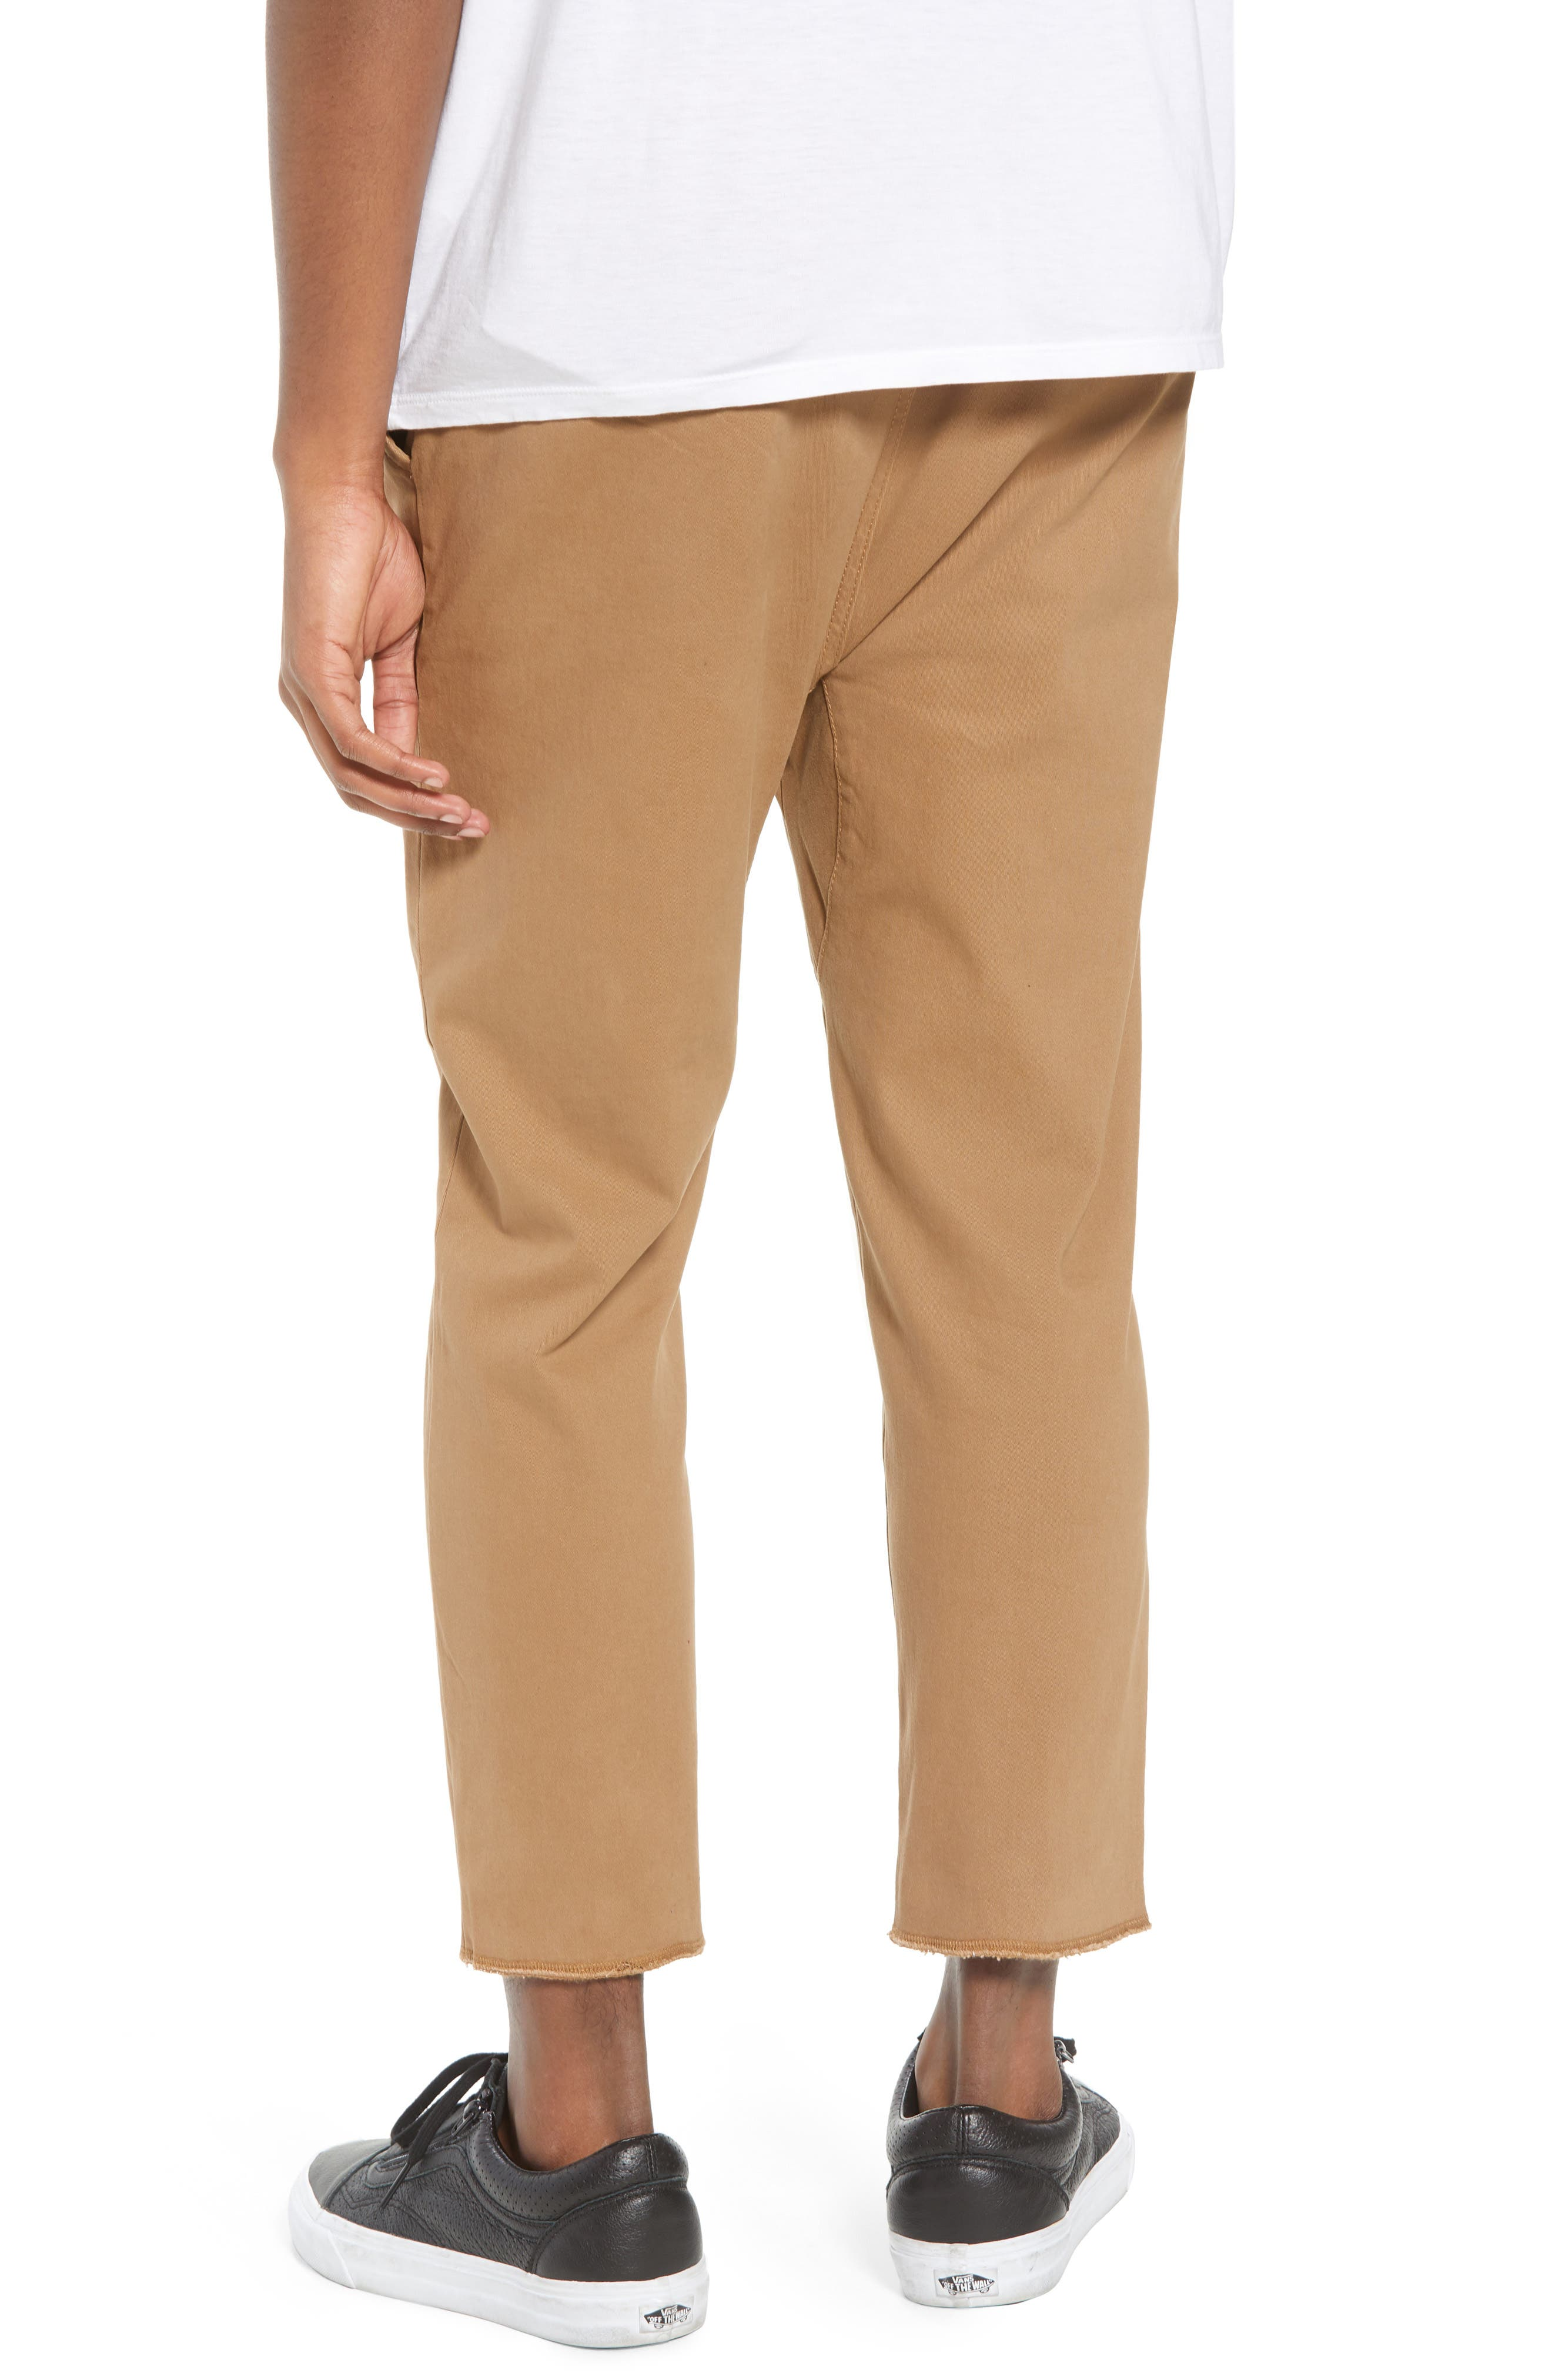 Vacation Slim Fit Crop Pants,                             Alternate thumbnail 2, color,                             Khaki